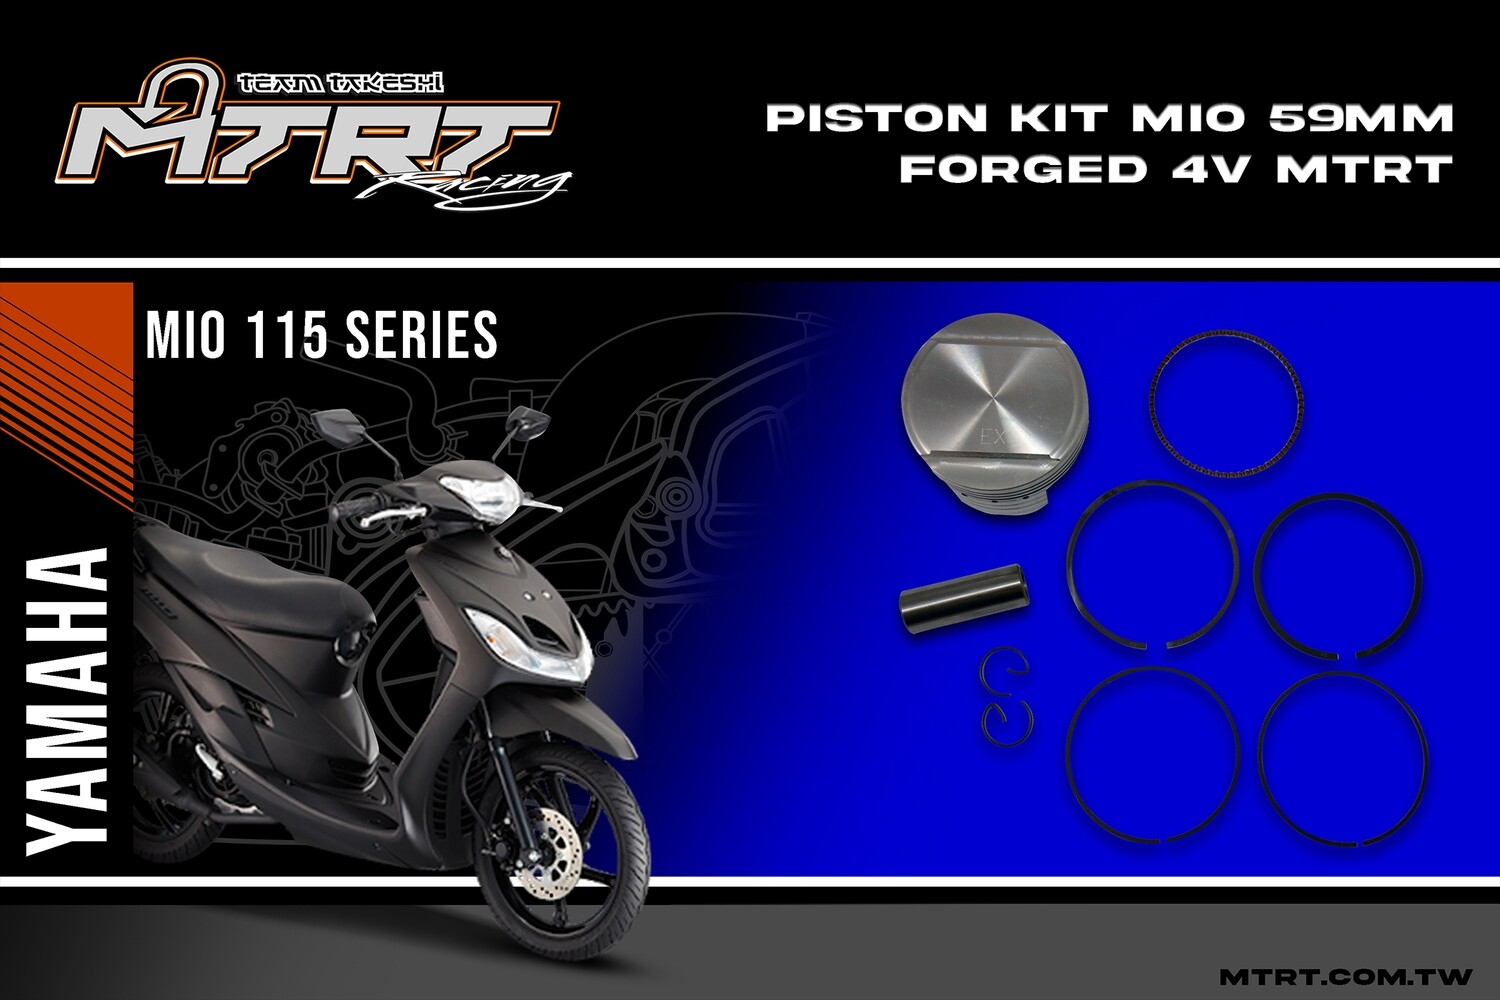 PISTON  KIT  MIO 59MM FORGED 4V MTRT